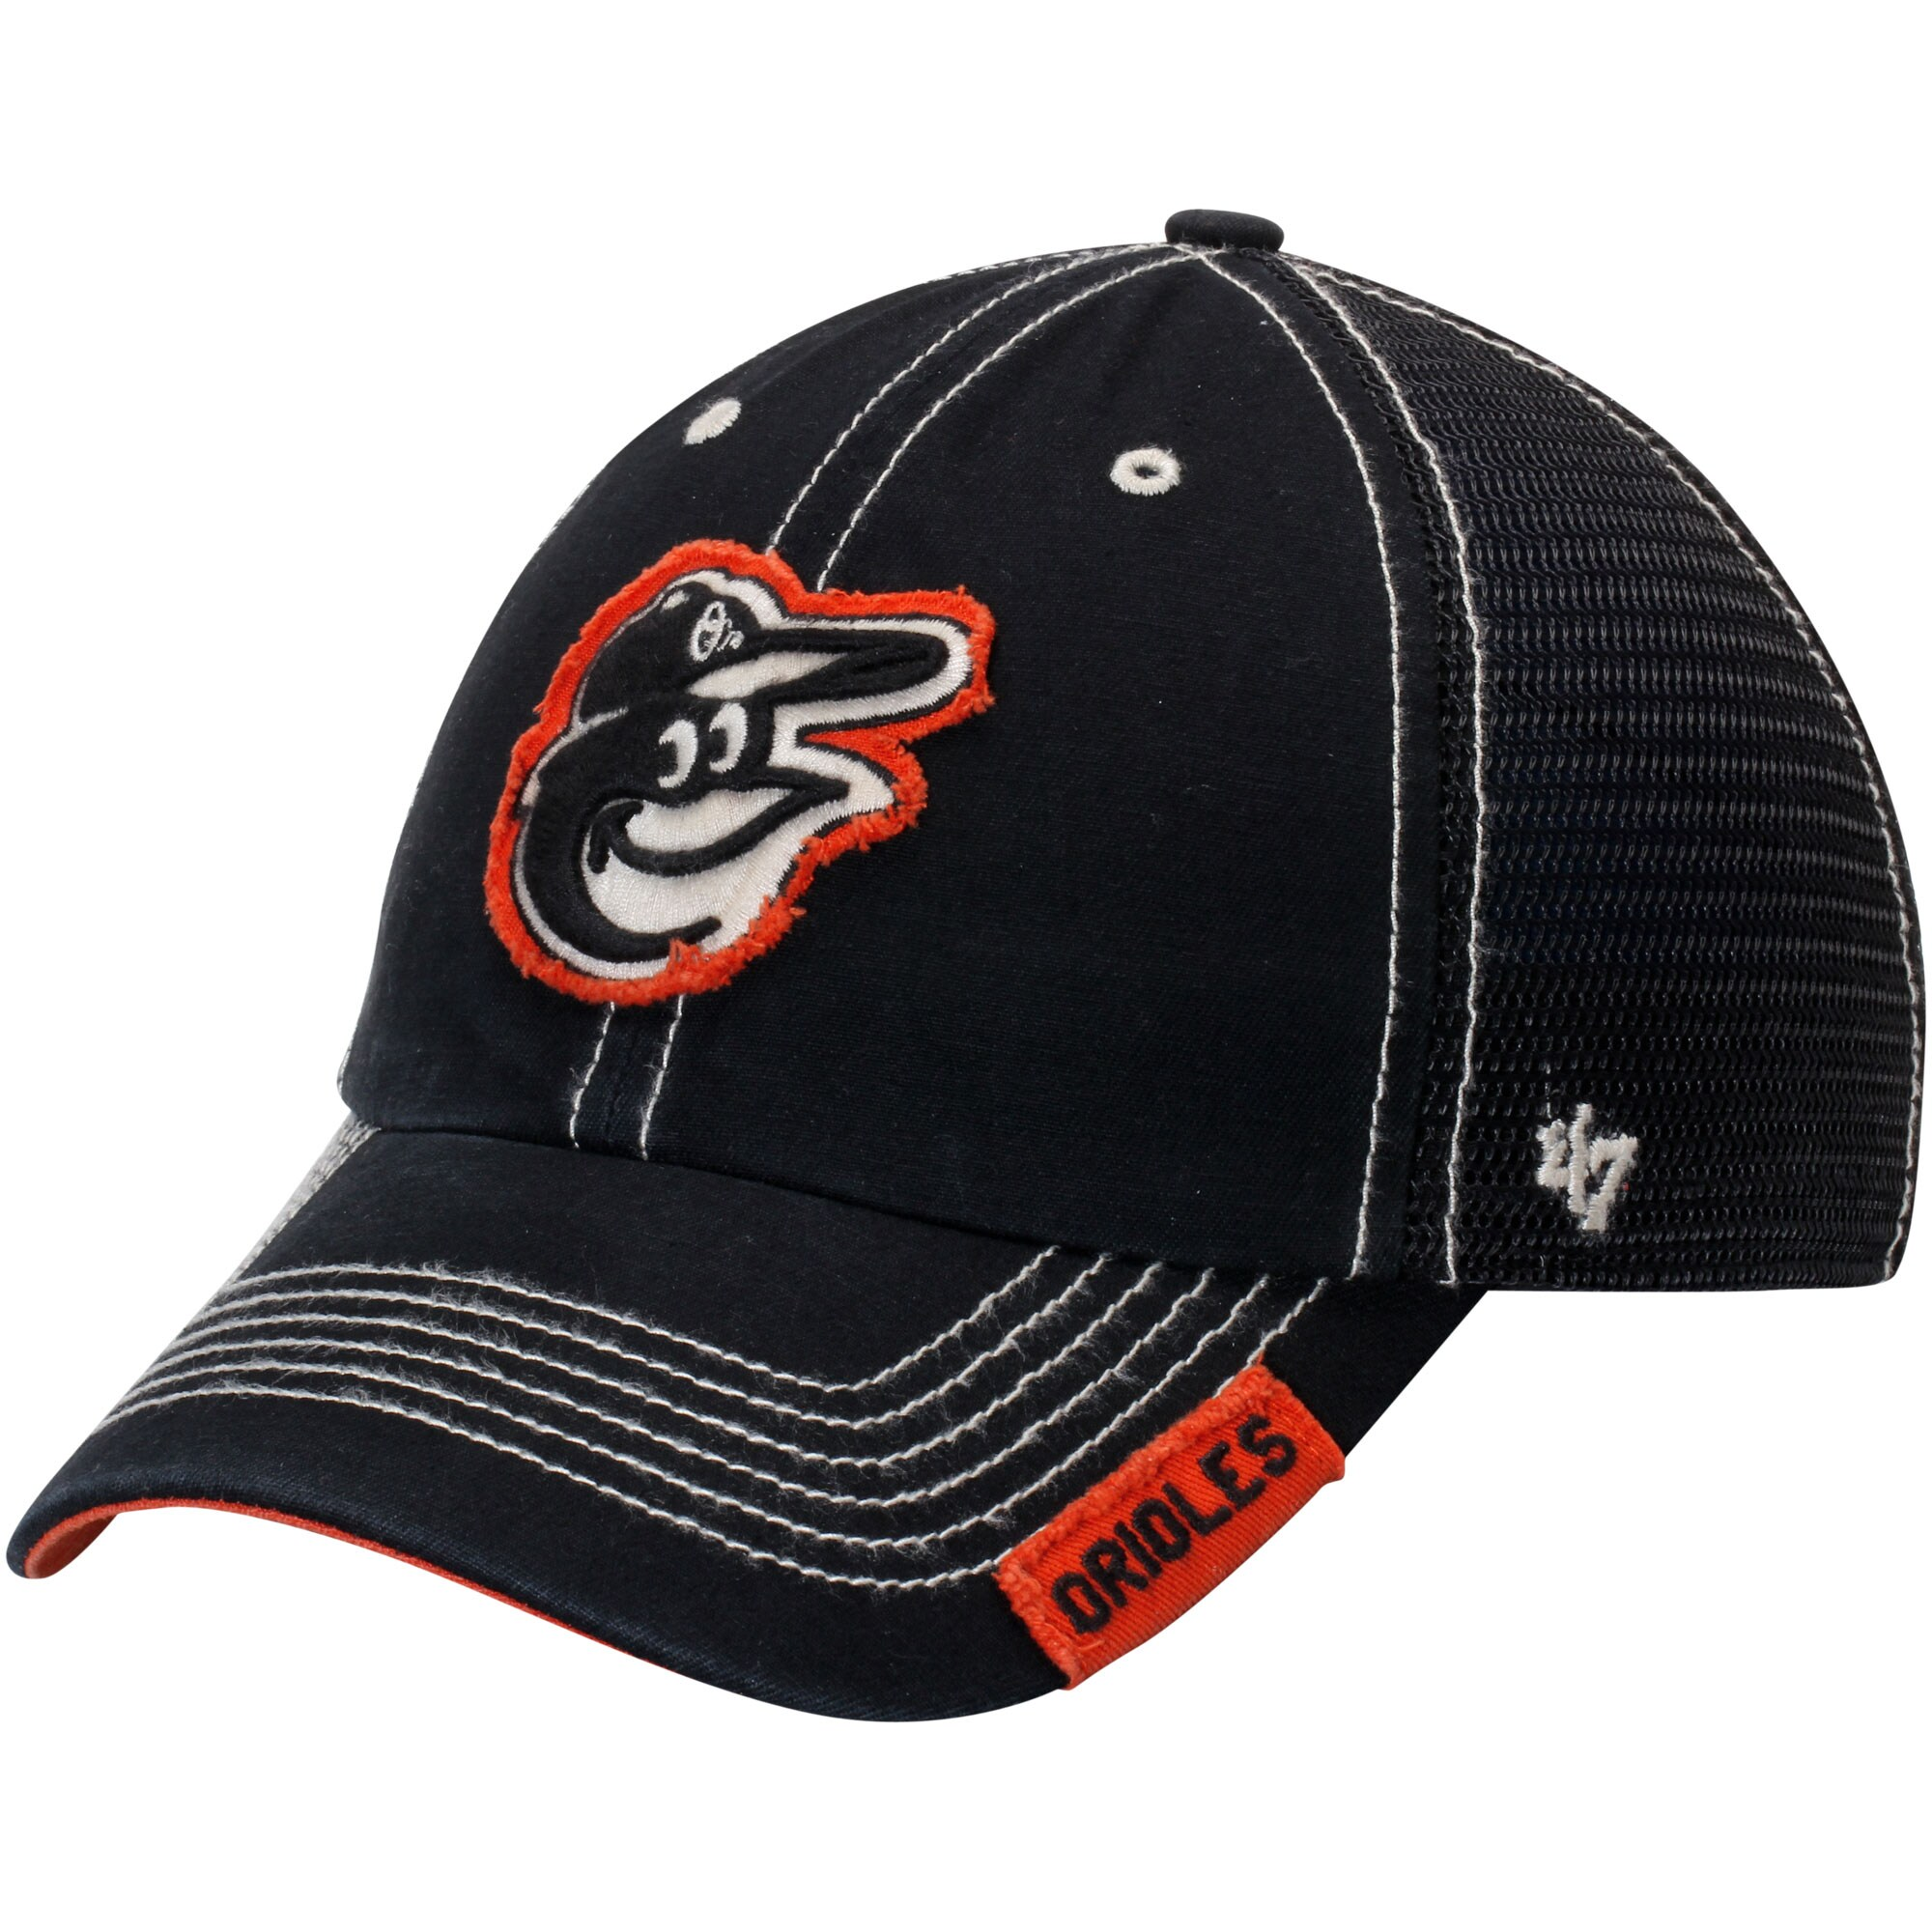 Baltimore Orioles '47 Turner Clean-Up Adjustable Hat - Black